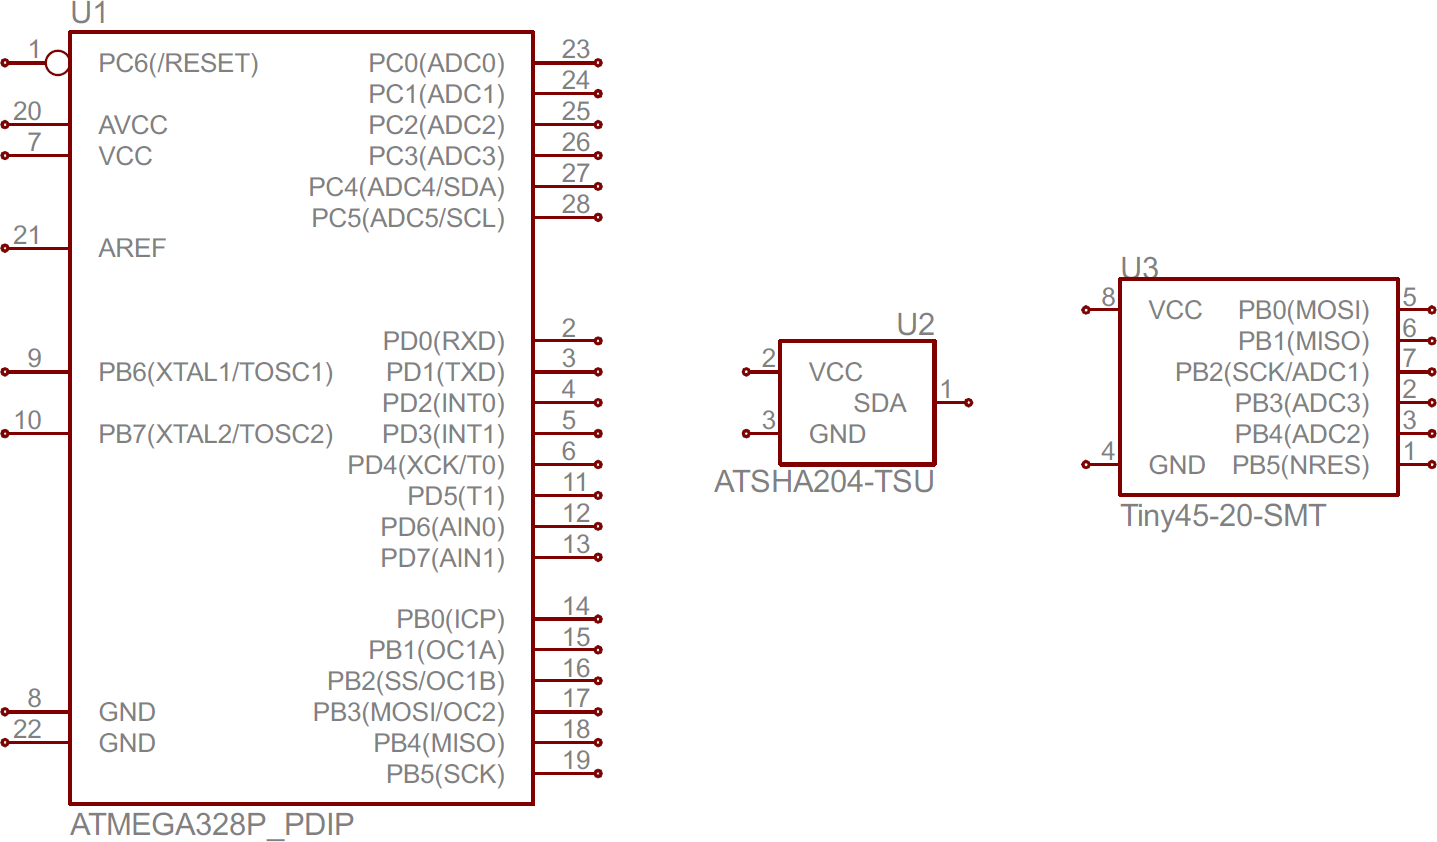 How To Read A Schematic Led Wiring Circuit Diagram Atmega328 Atsha204 And Attiny45 Ic Symbols